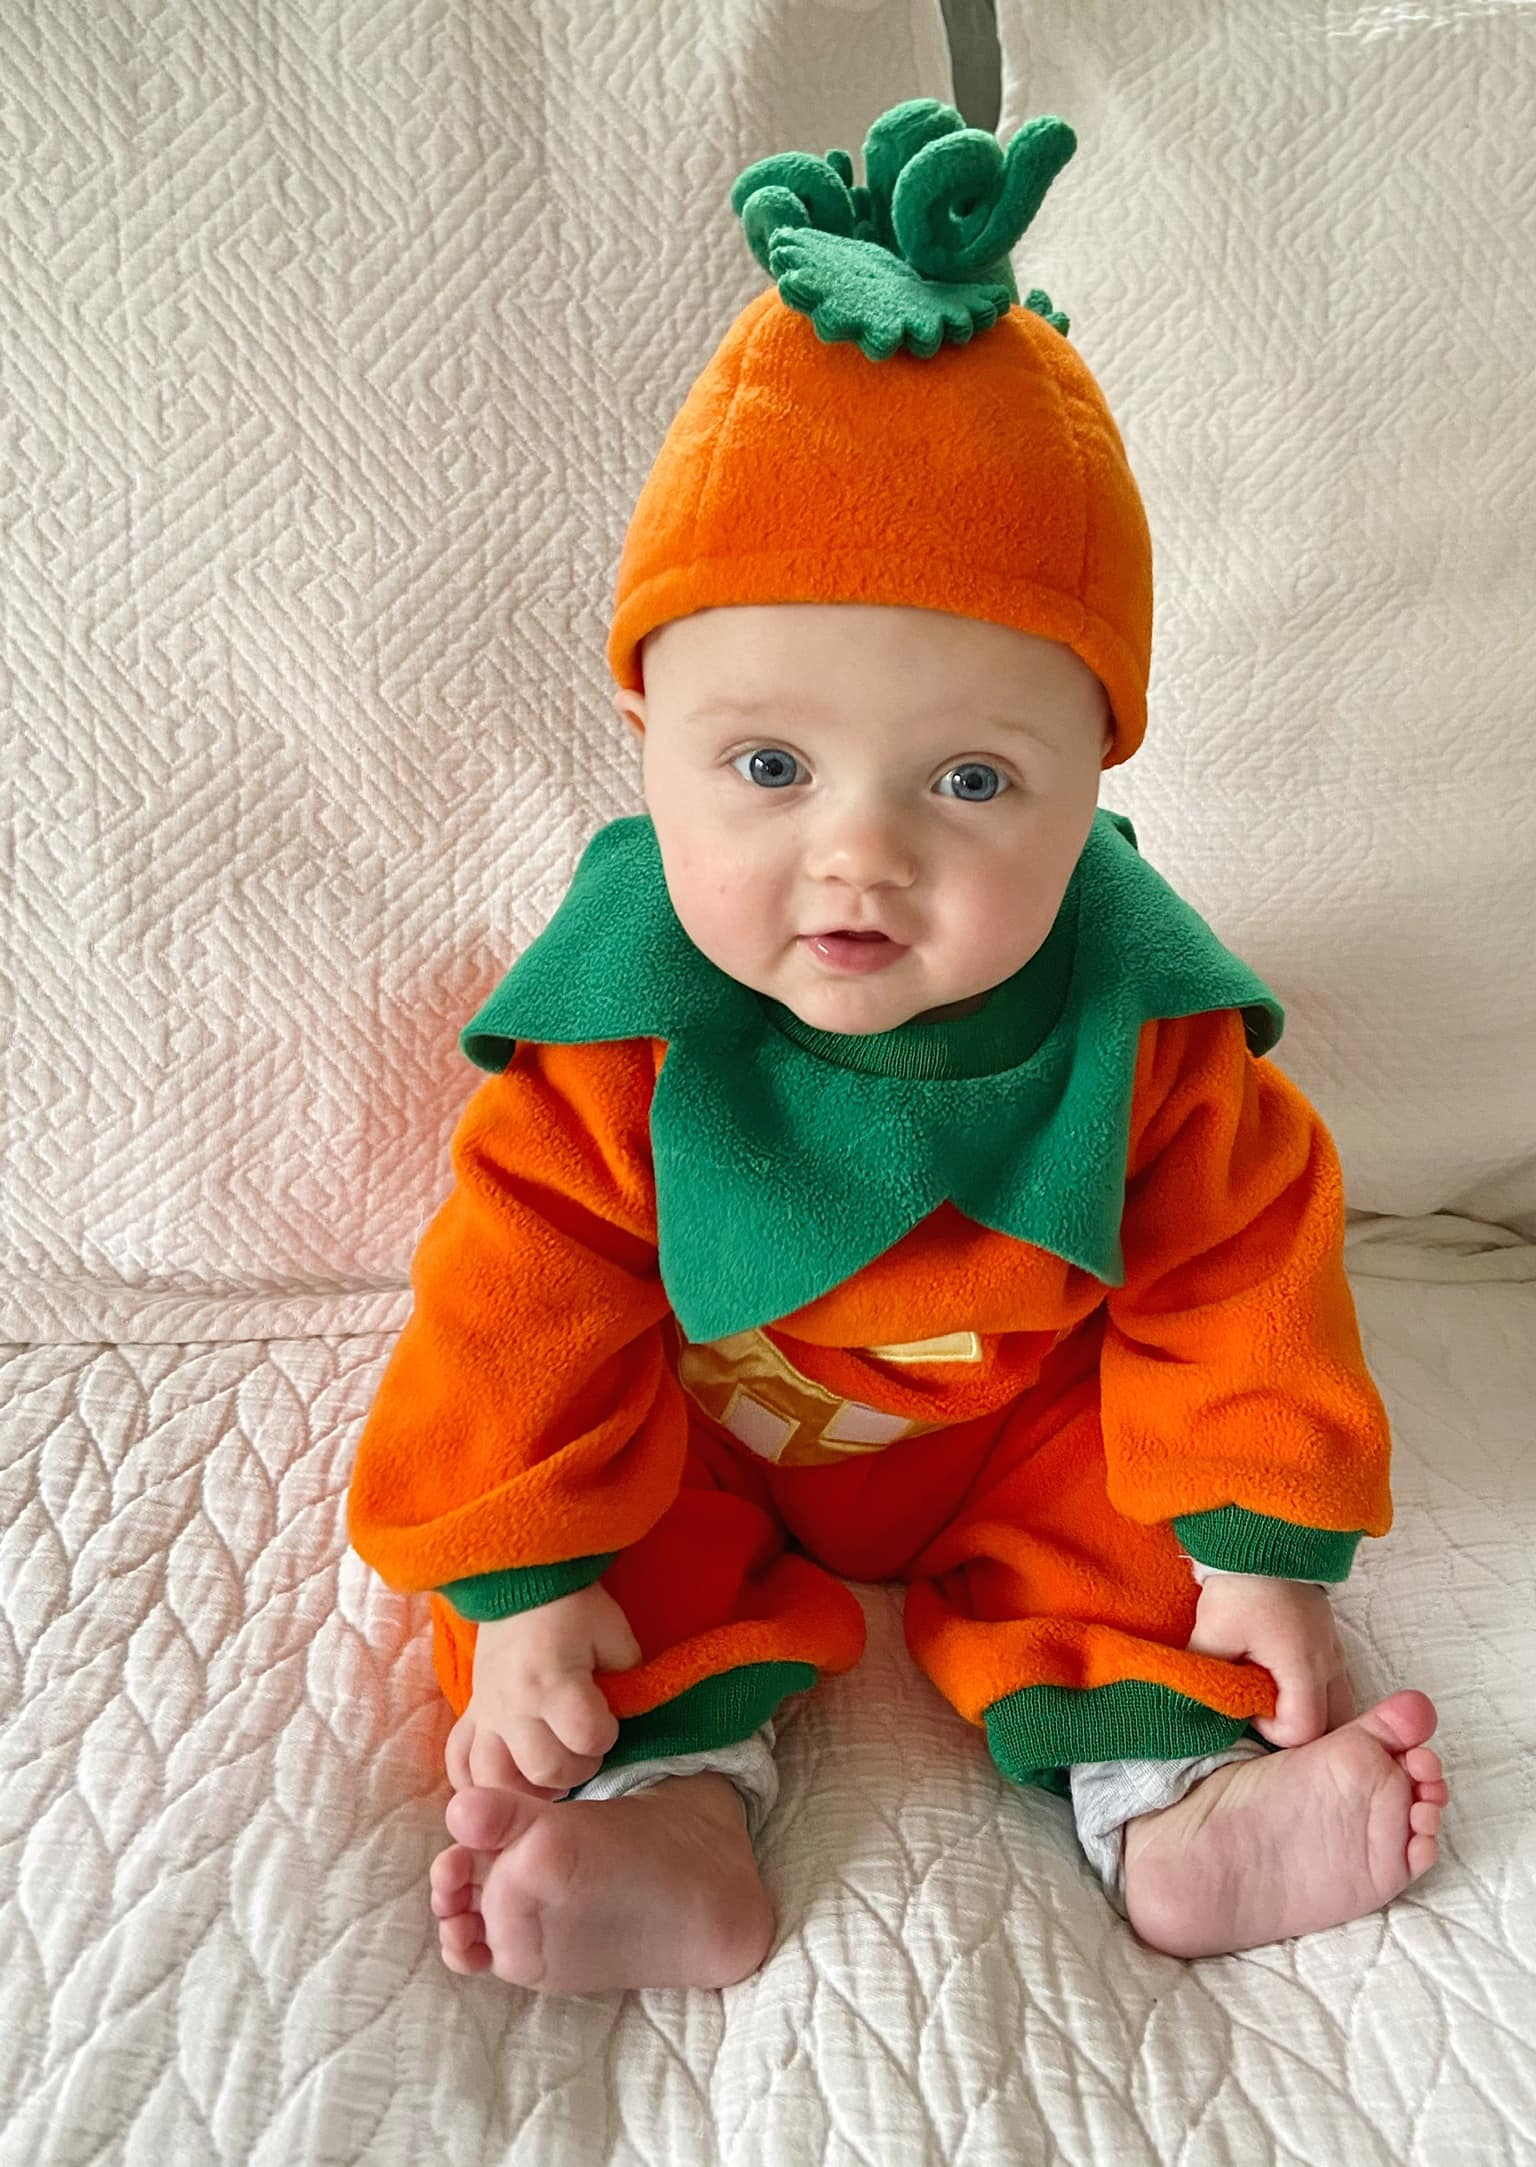 Rory as pumpkin for halloween